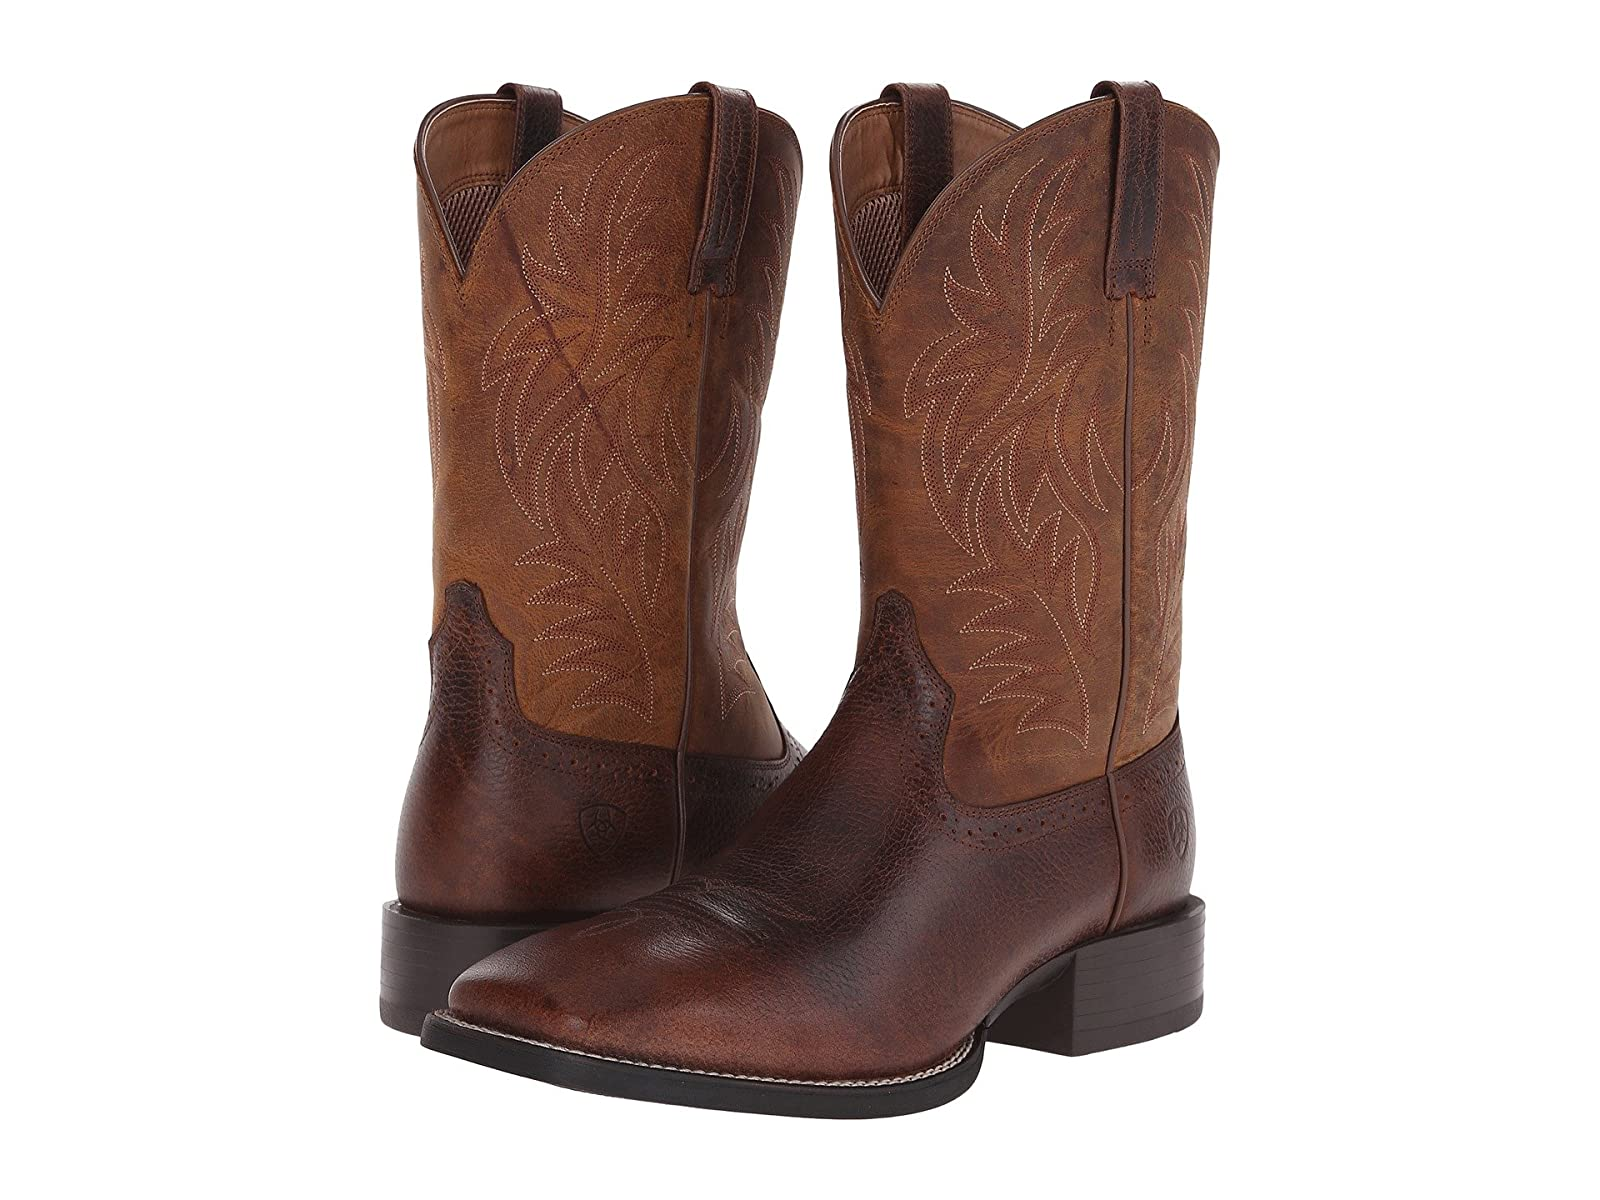 Ariat Sport Western Wide Square ToeSelling fashionable and eye-catching shoes